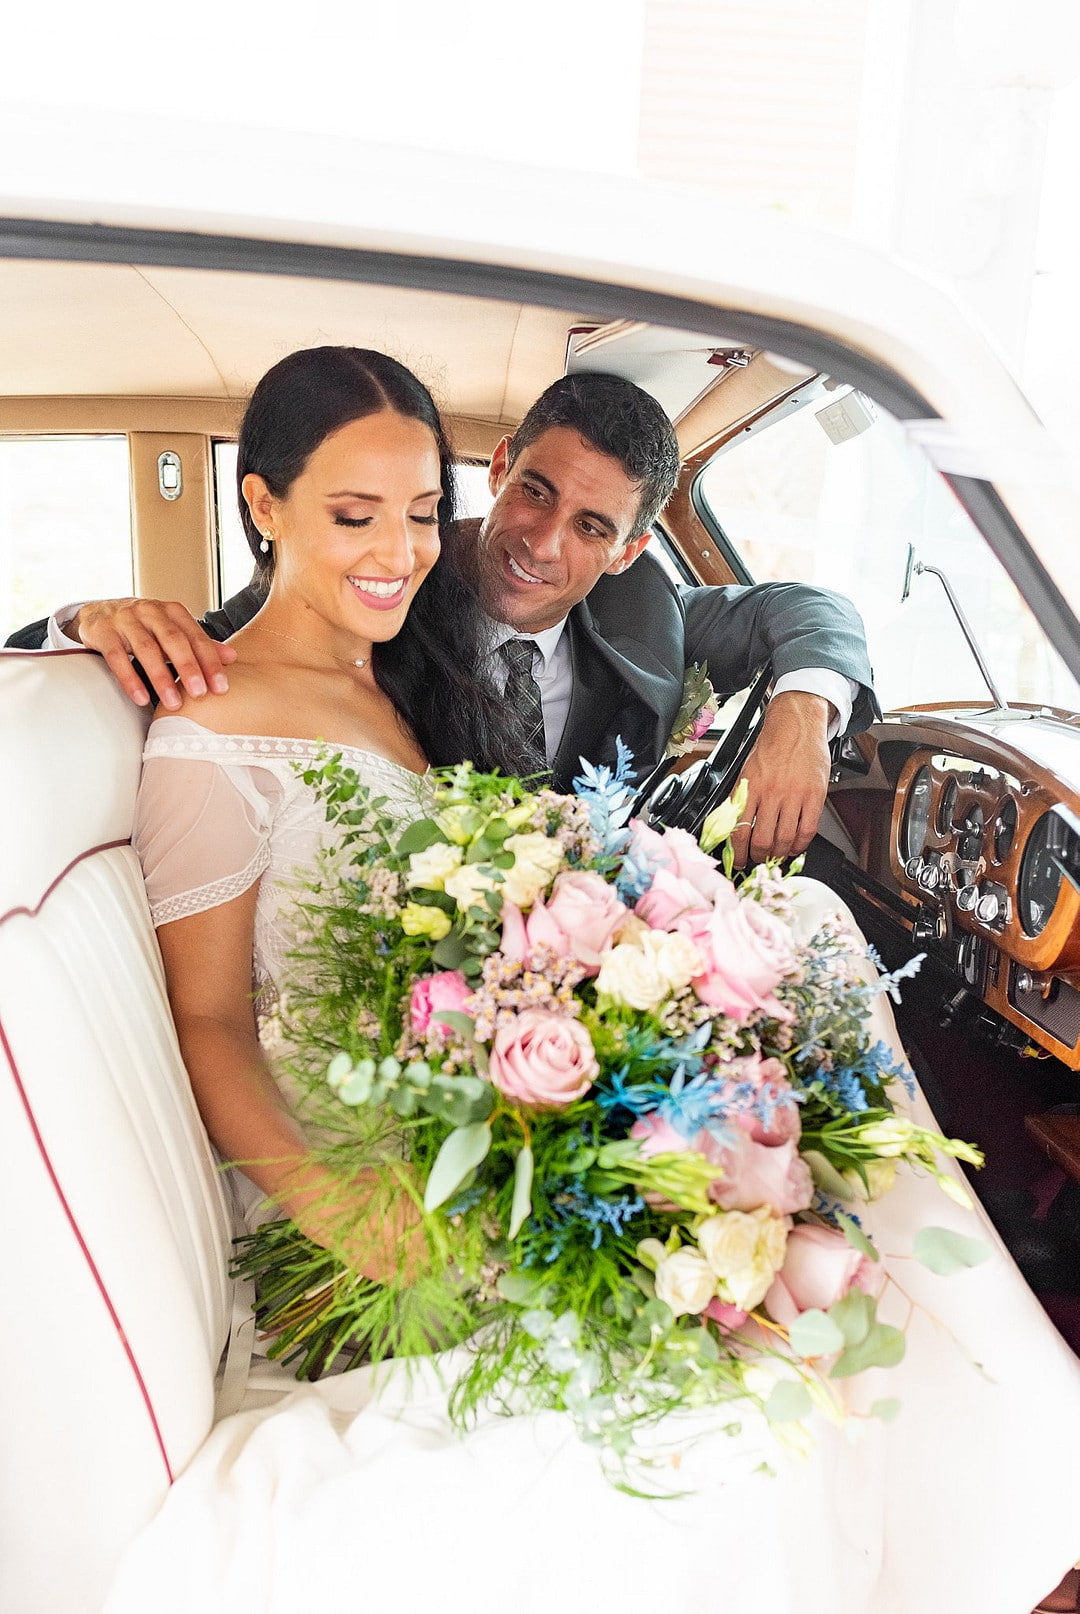 bride looks down at big bouquet while groom sits behind her looking at the bride inside the front seat of classic car